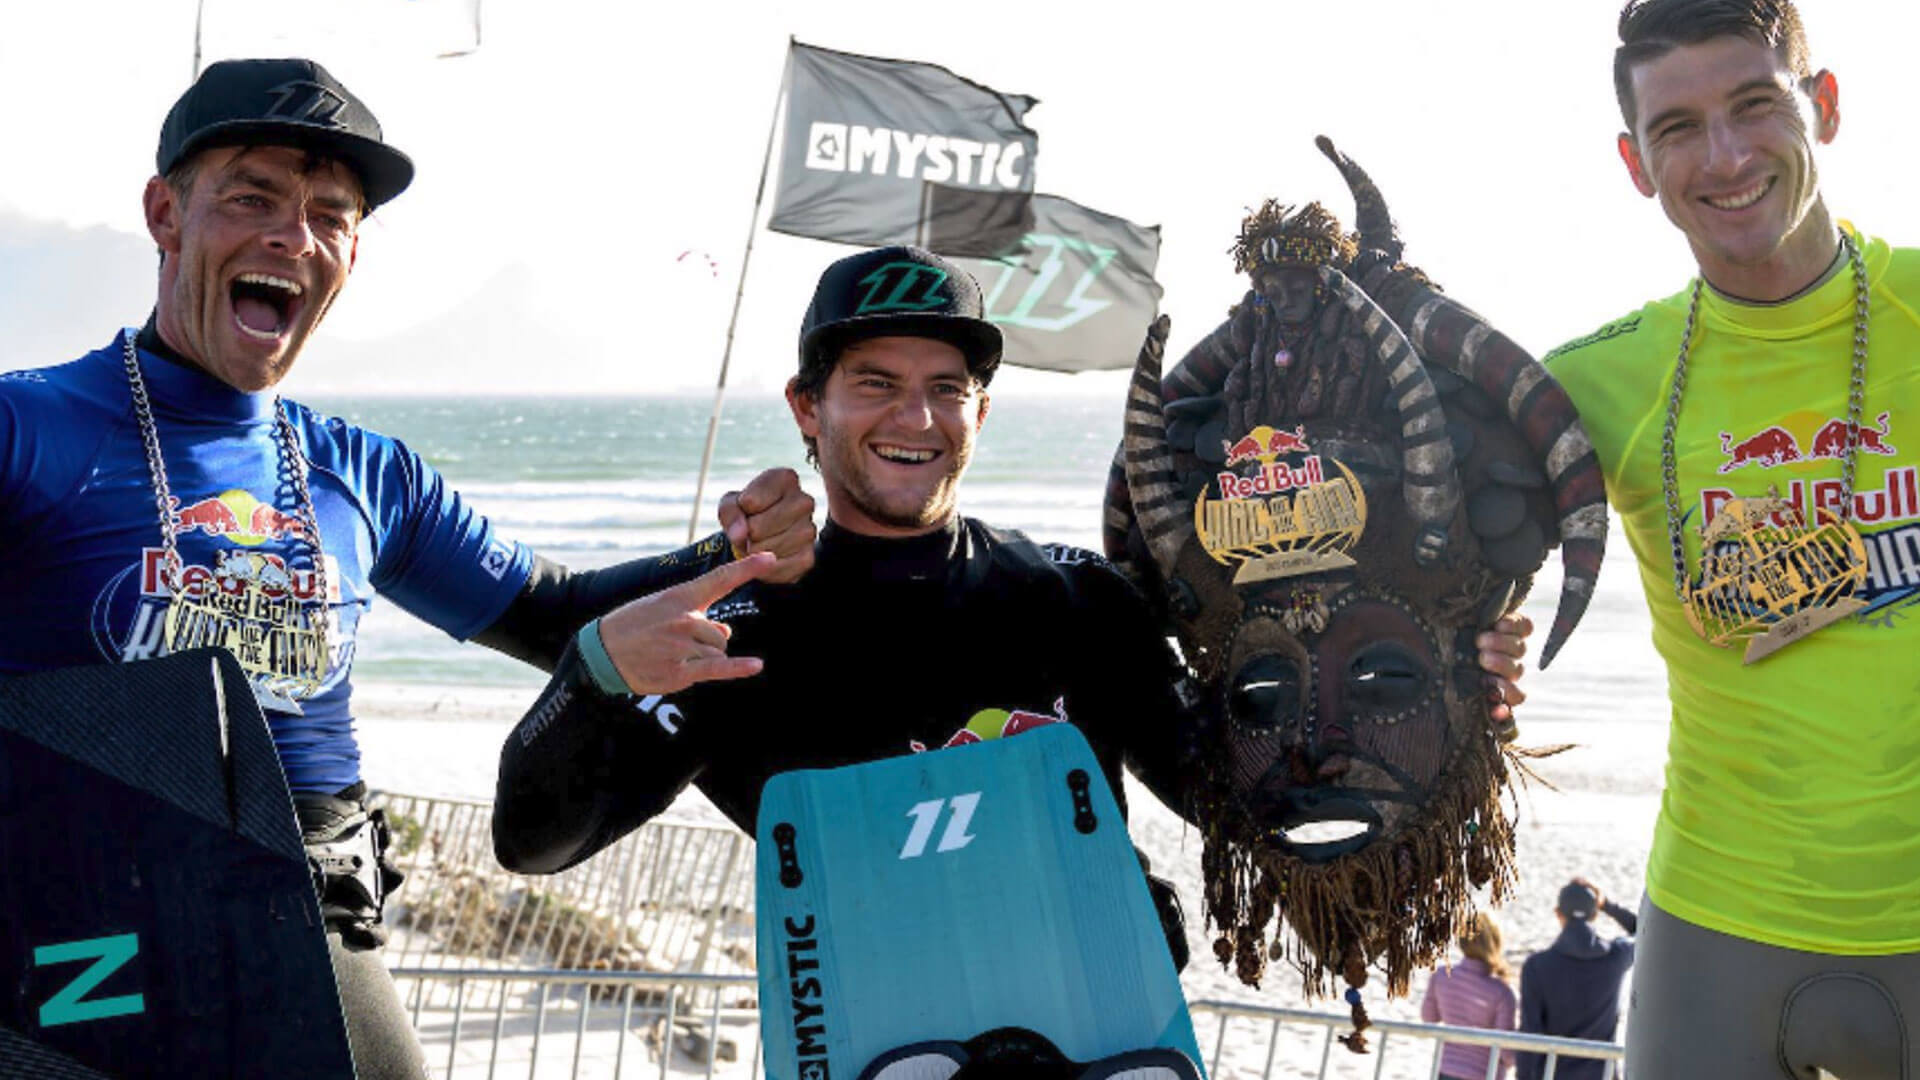 King of the Air RED BULL 2020